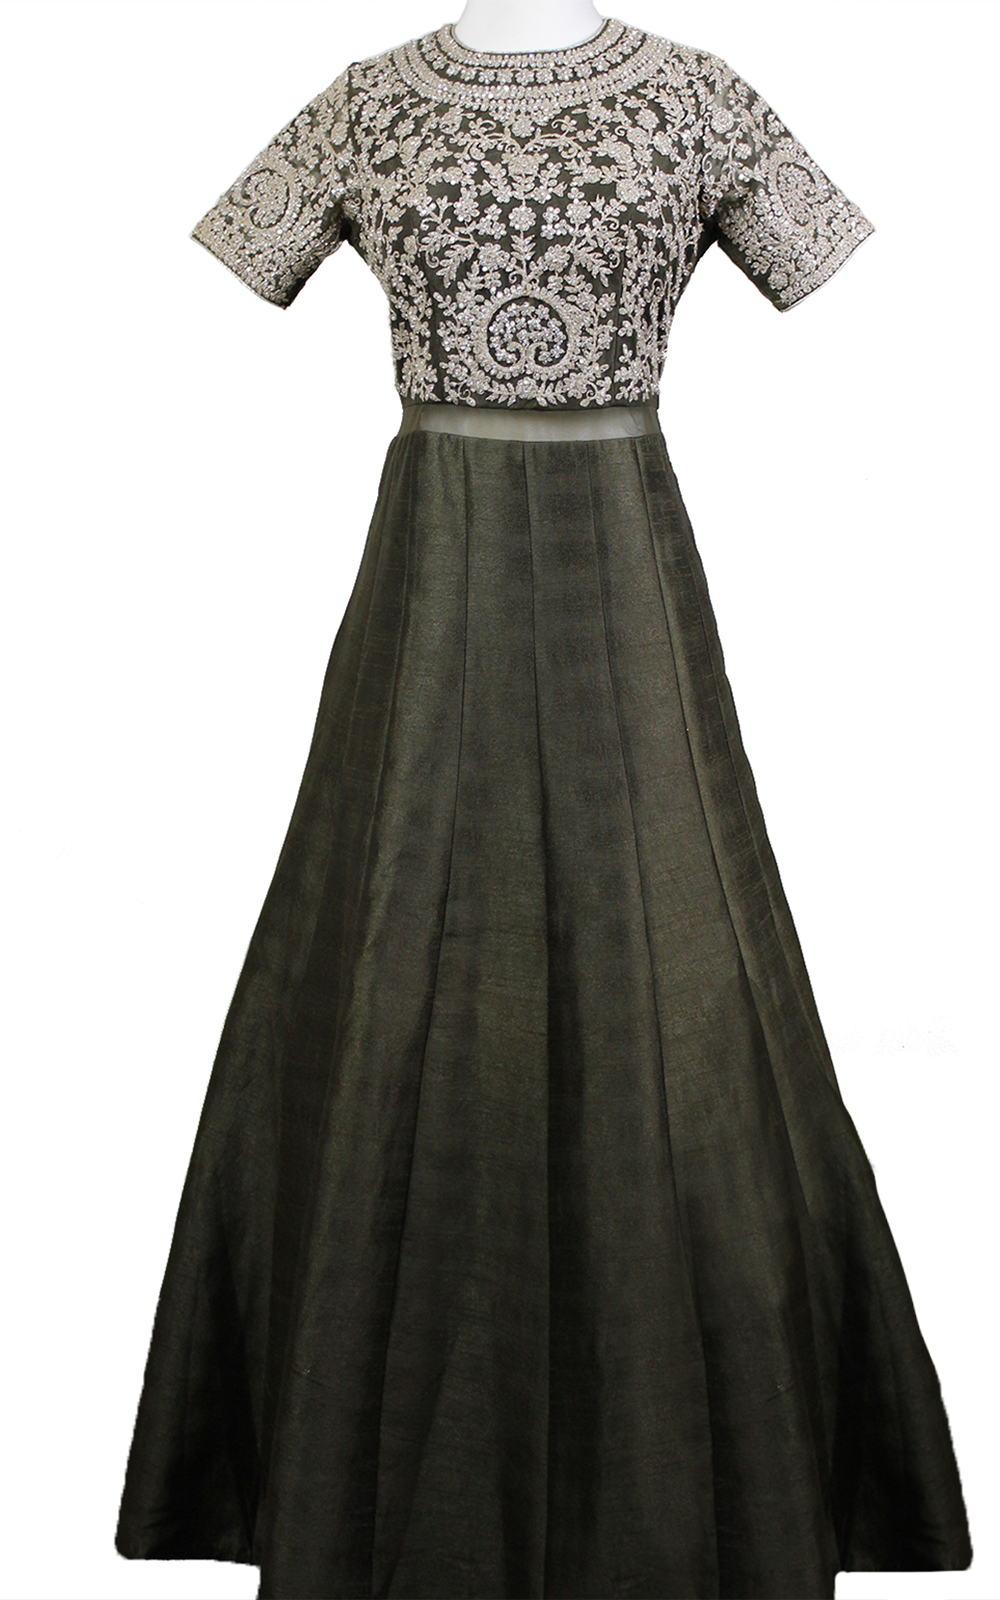 Olive Green Anarkali with Silver Threadwork